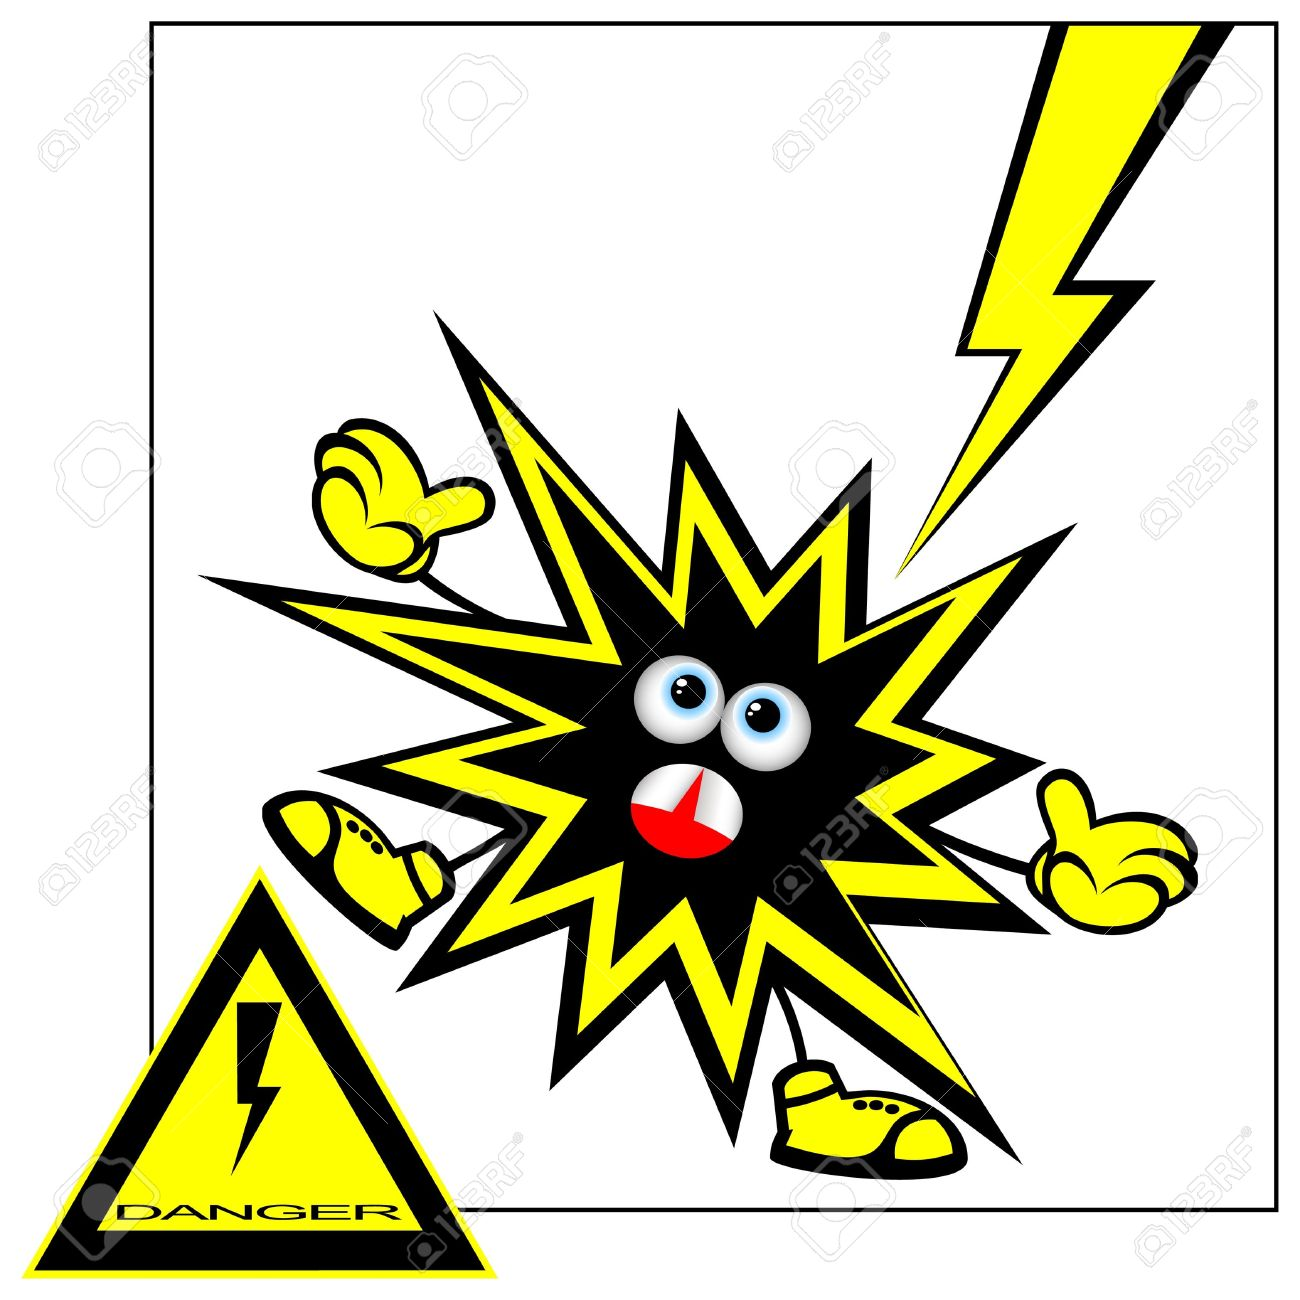 Electric current clipart.